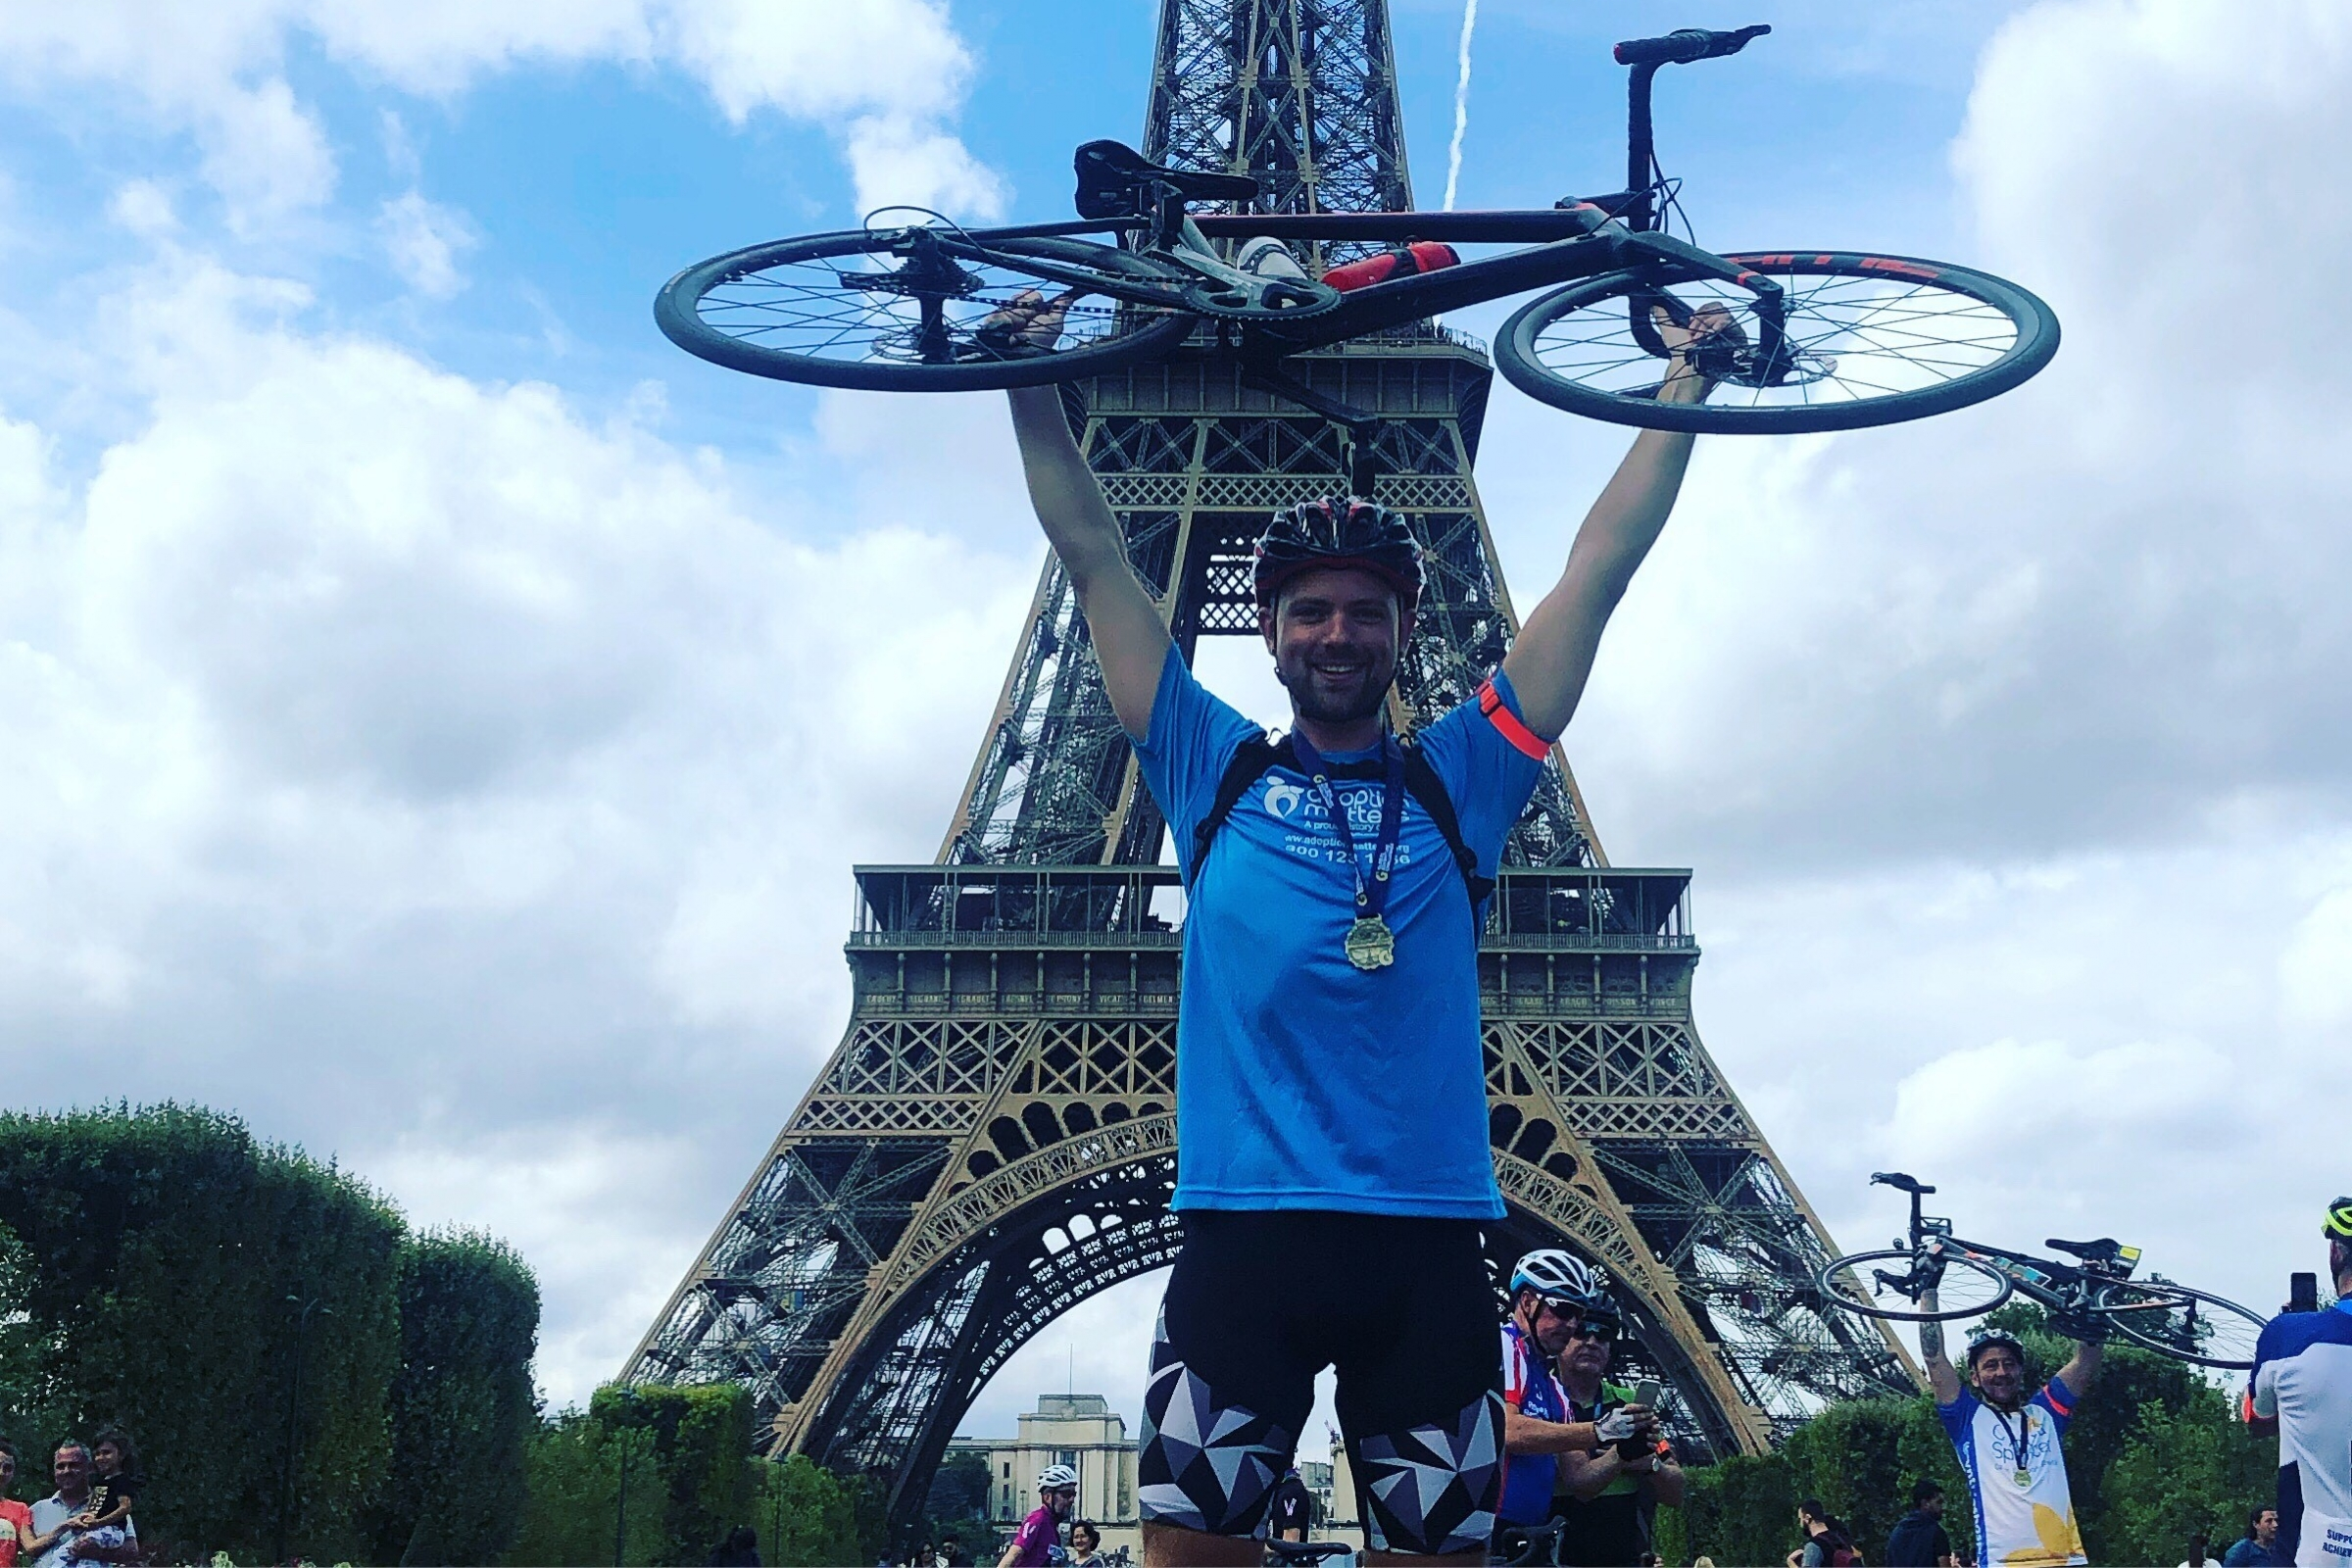 Jamie cycles from London to Paris